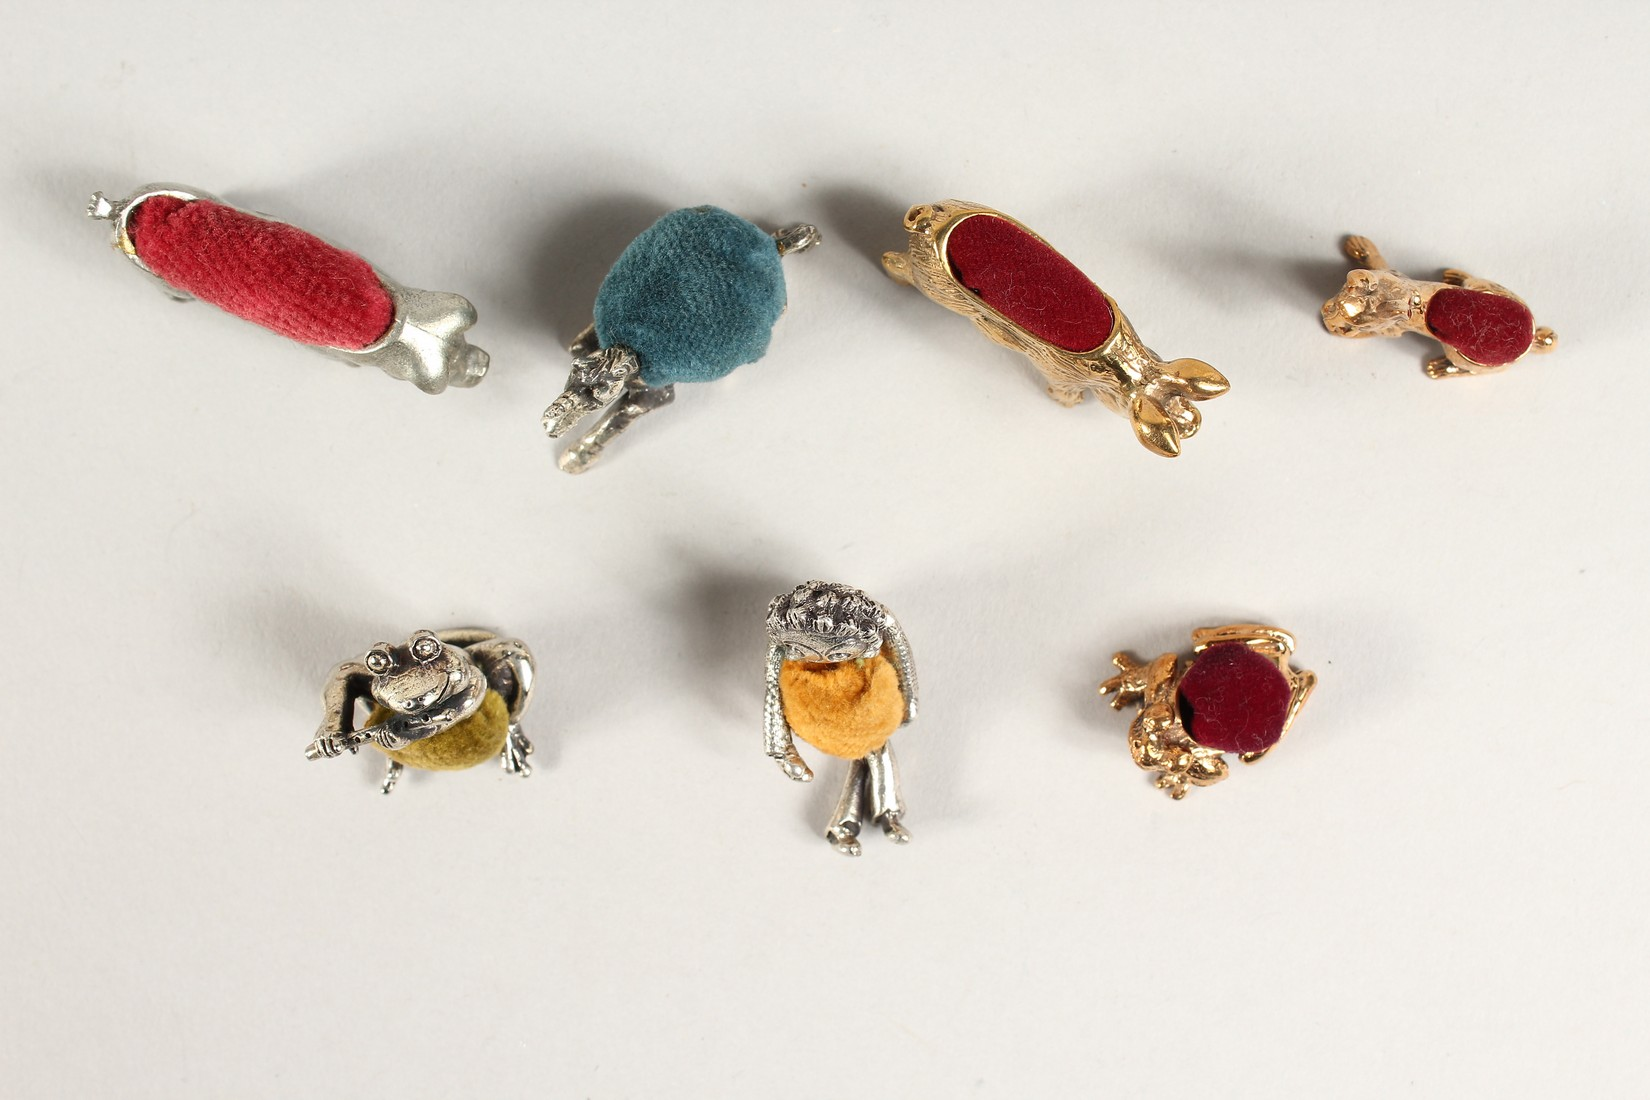 A COLLECTION OF 7 METAL PIN CUSHIONS - Image 2 of 2